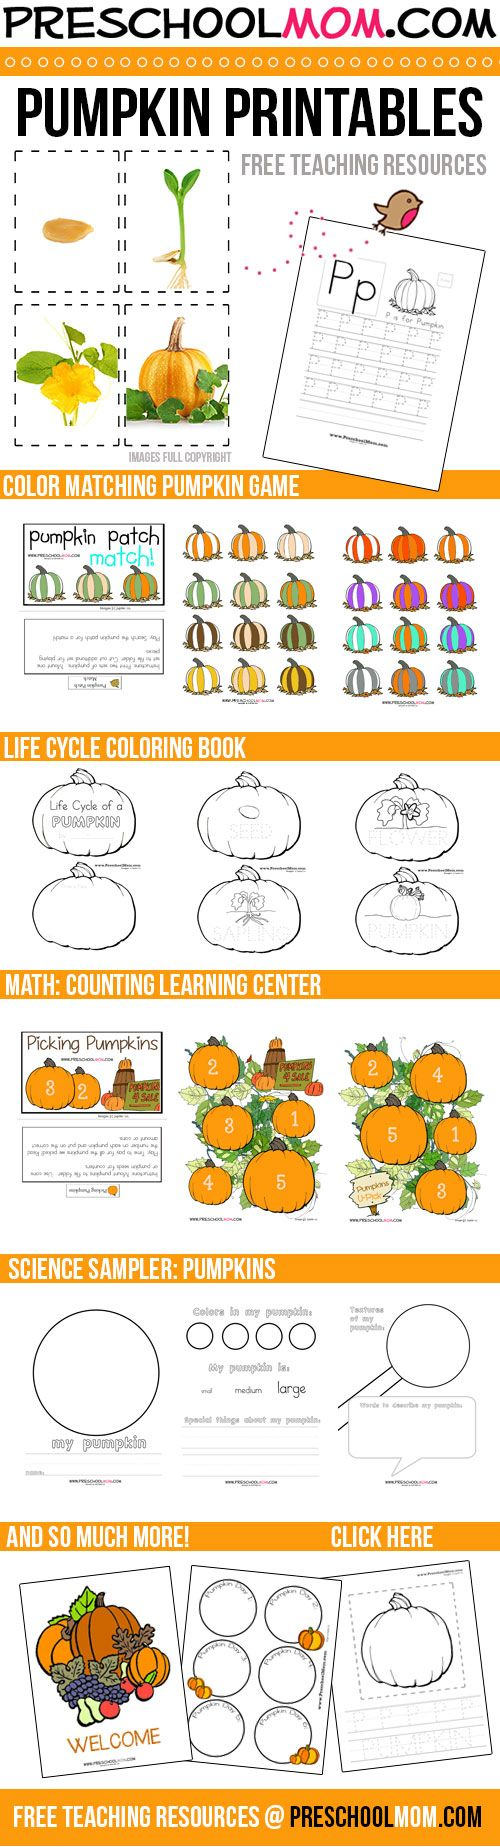 math worksheet : 76 best pumpkin math images on pinterest  fall pumpkins  : Pumpkin Math Worksheet